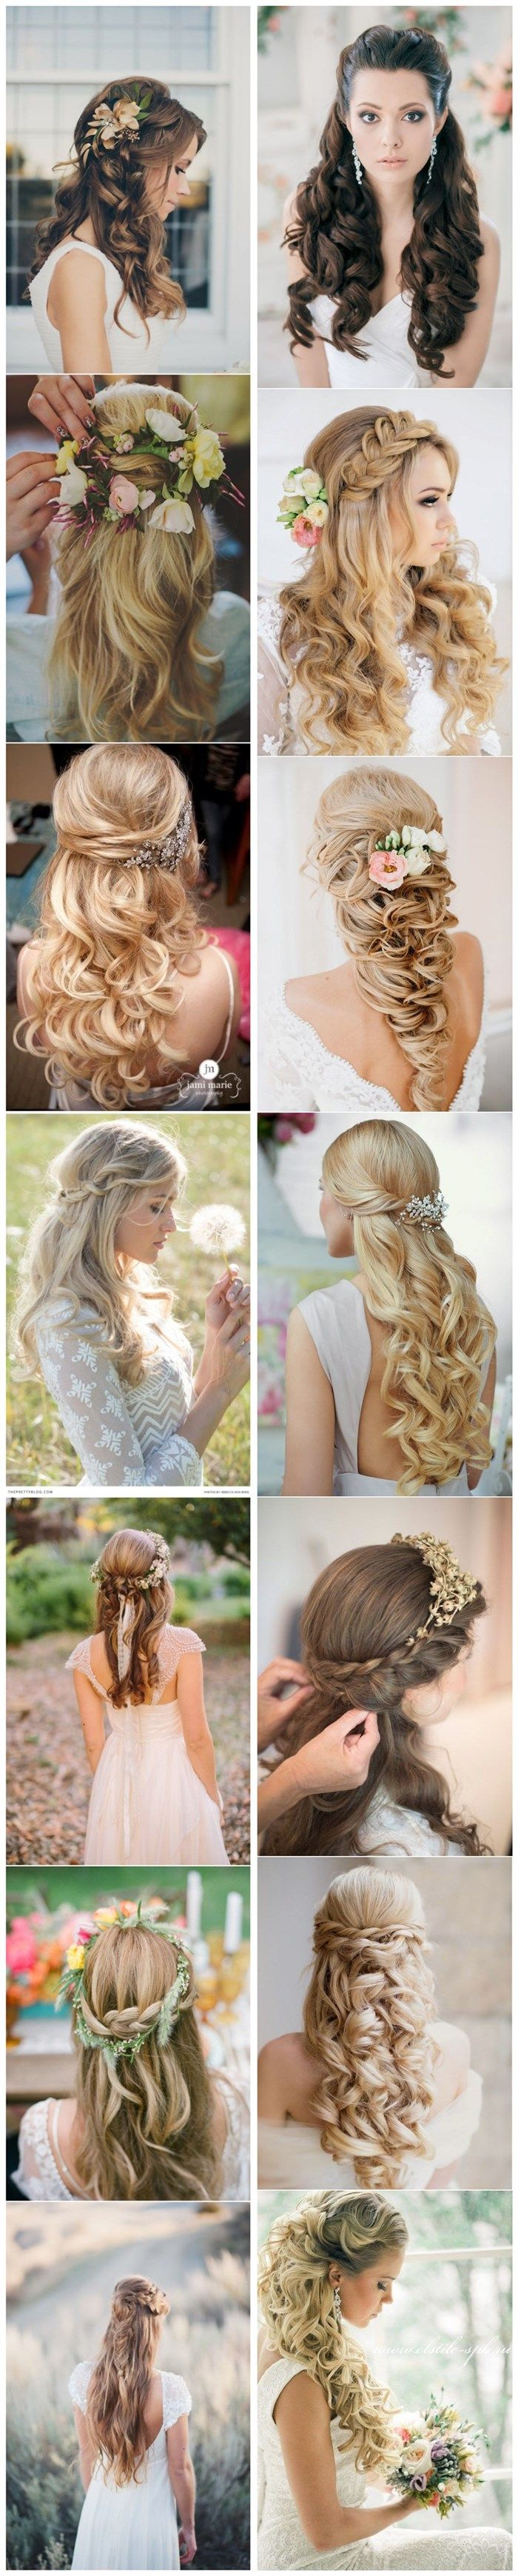 Beautiful Bridal/Prom hair